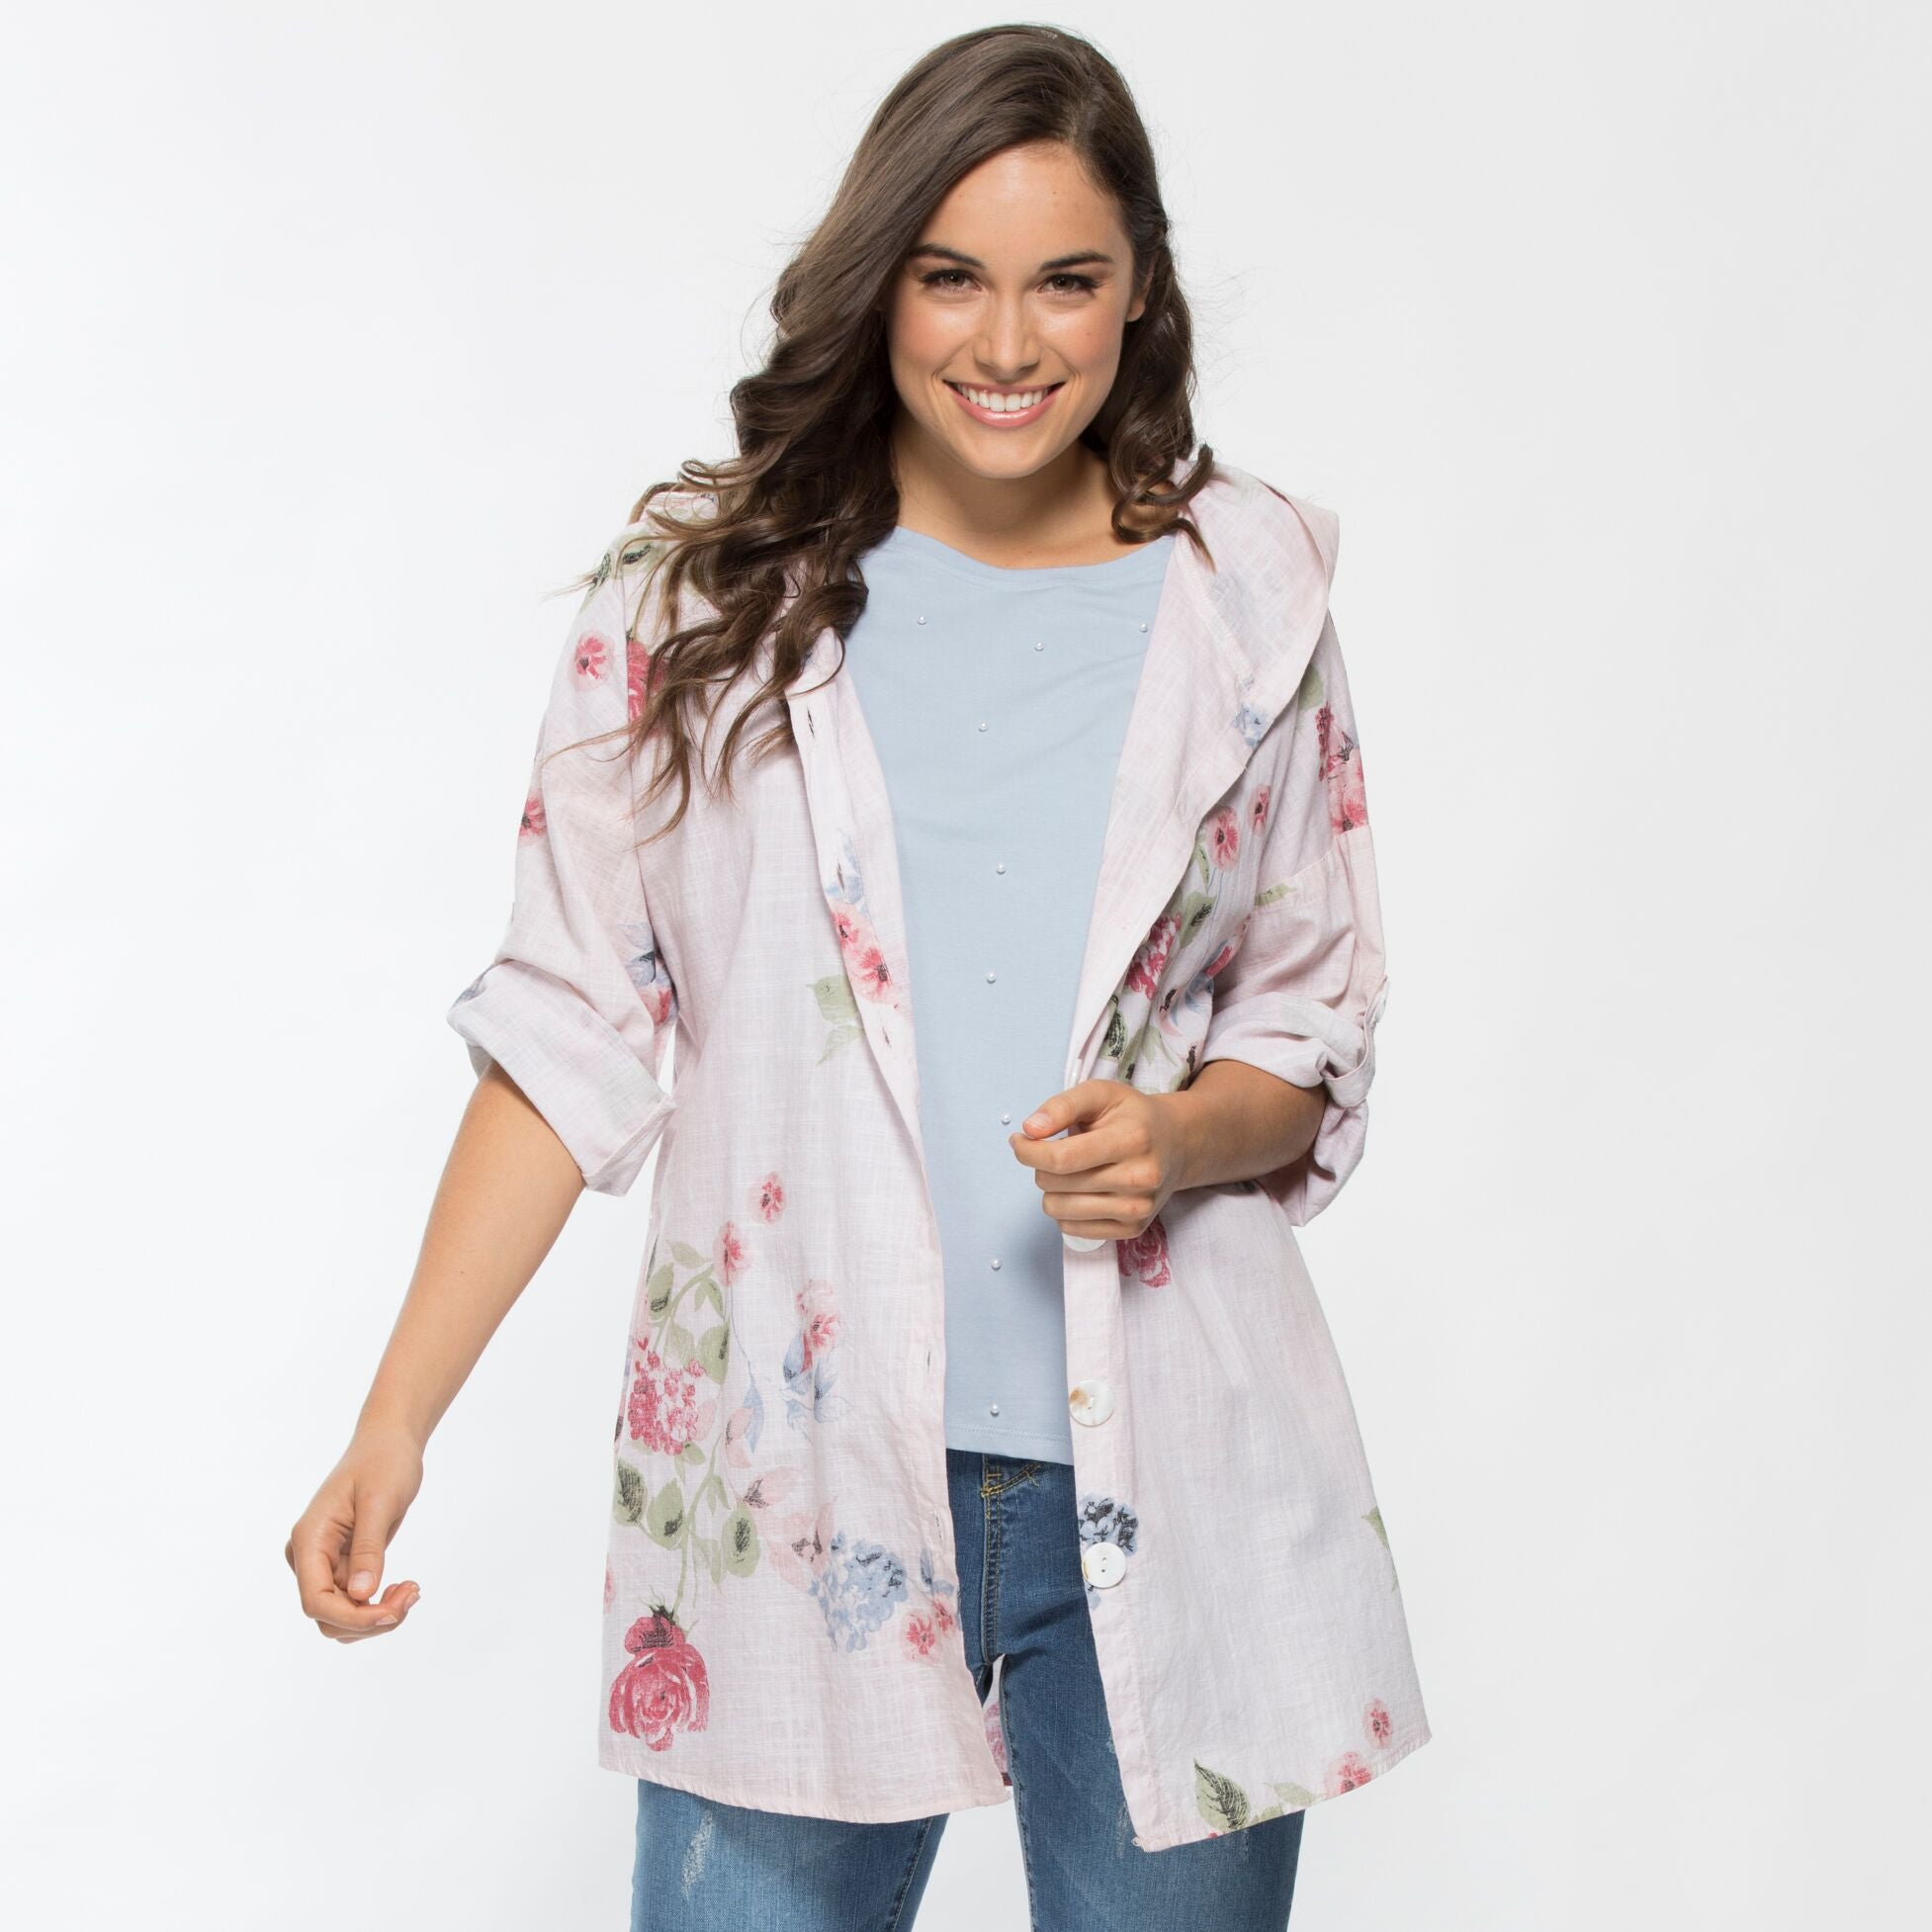 Threadz Floral Print Hooded Jacket - Debbie Lee Fashions